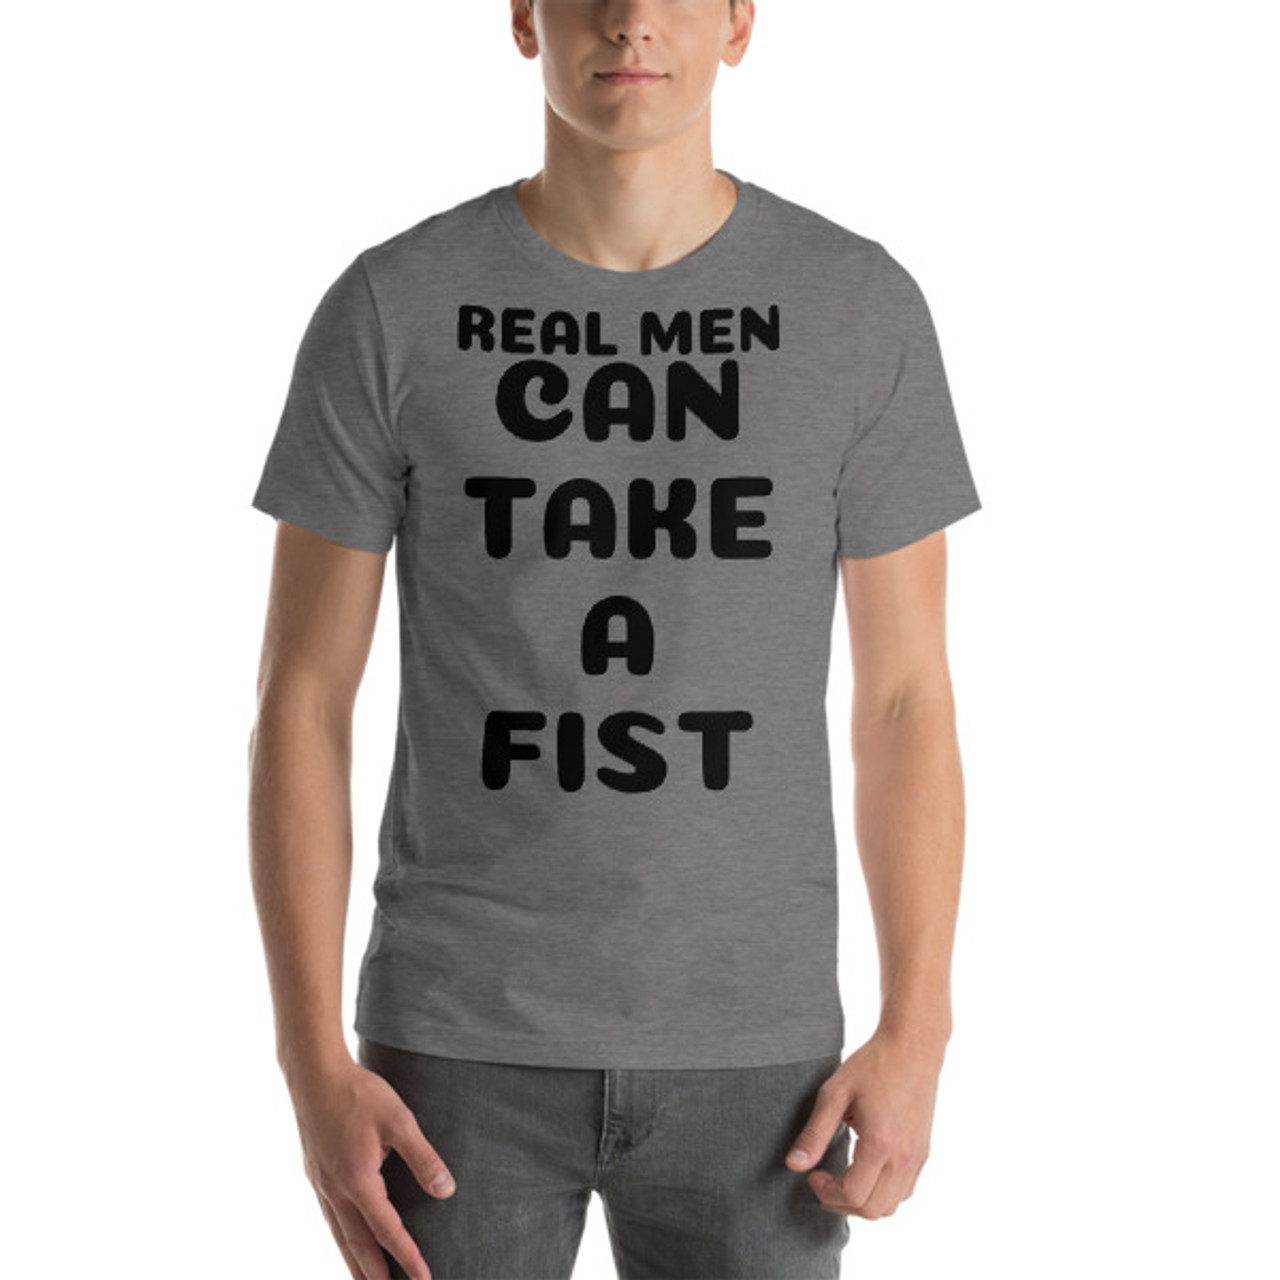 Real Men Can take a fist Short-Sleeve T-Shirt